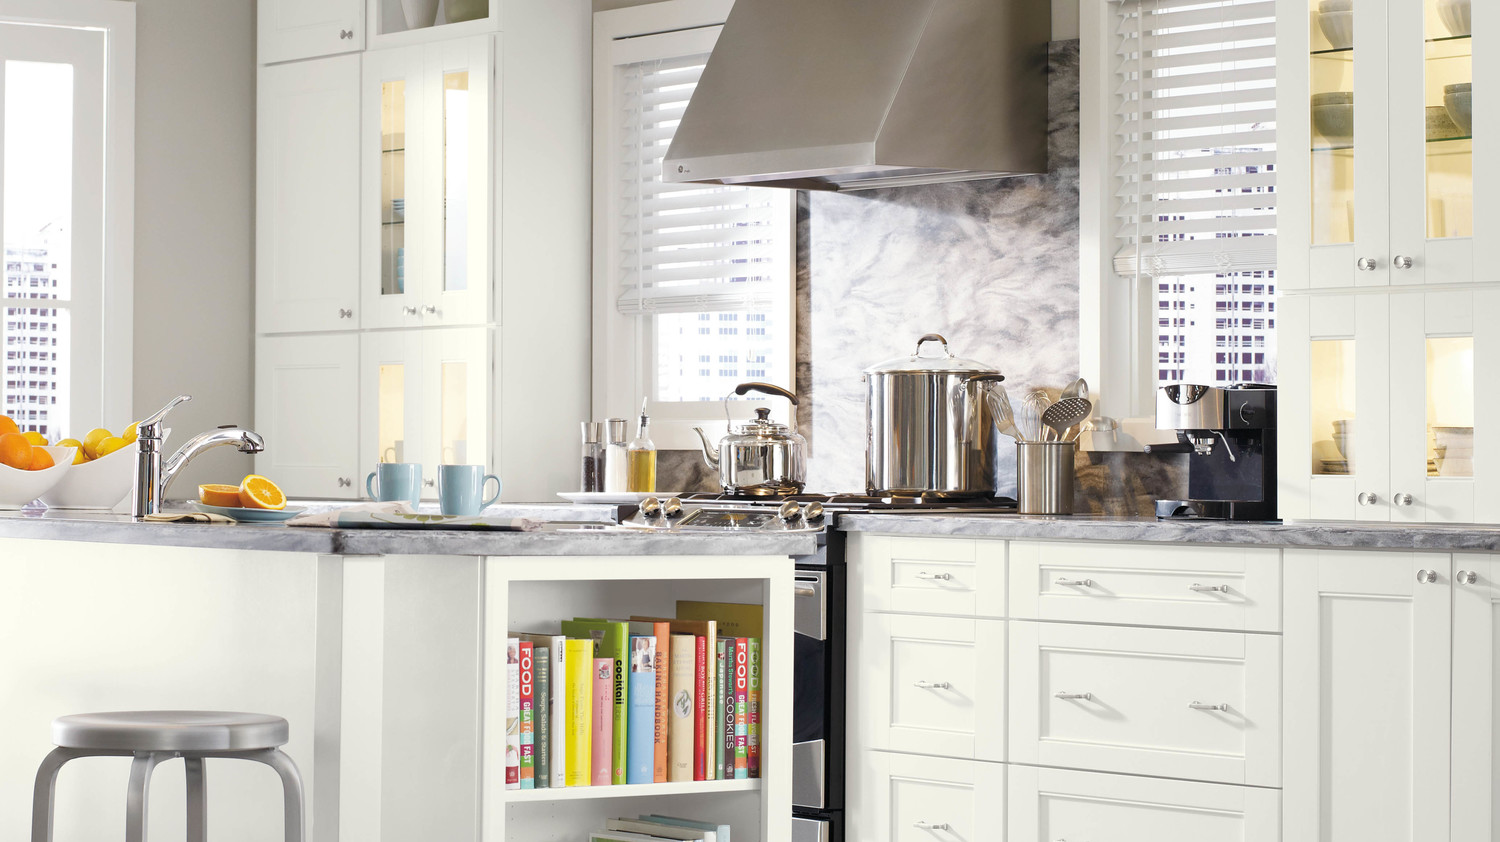 7 Ways to Deodorize Your Kitchen | Martha Stewart Ze Pink Kitchen Ideas on pink blue sky, pink la, pink st, pink flower of life, pink bh, pink ba, pink kingdom, pink hp, pink be, pink do, pink brother, pink sp,